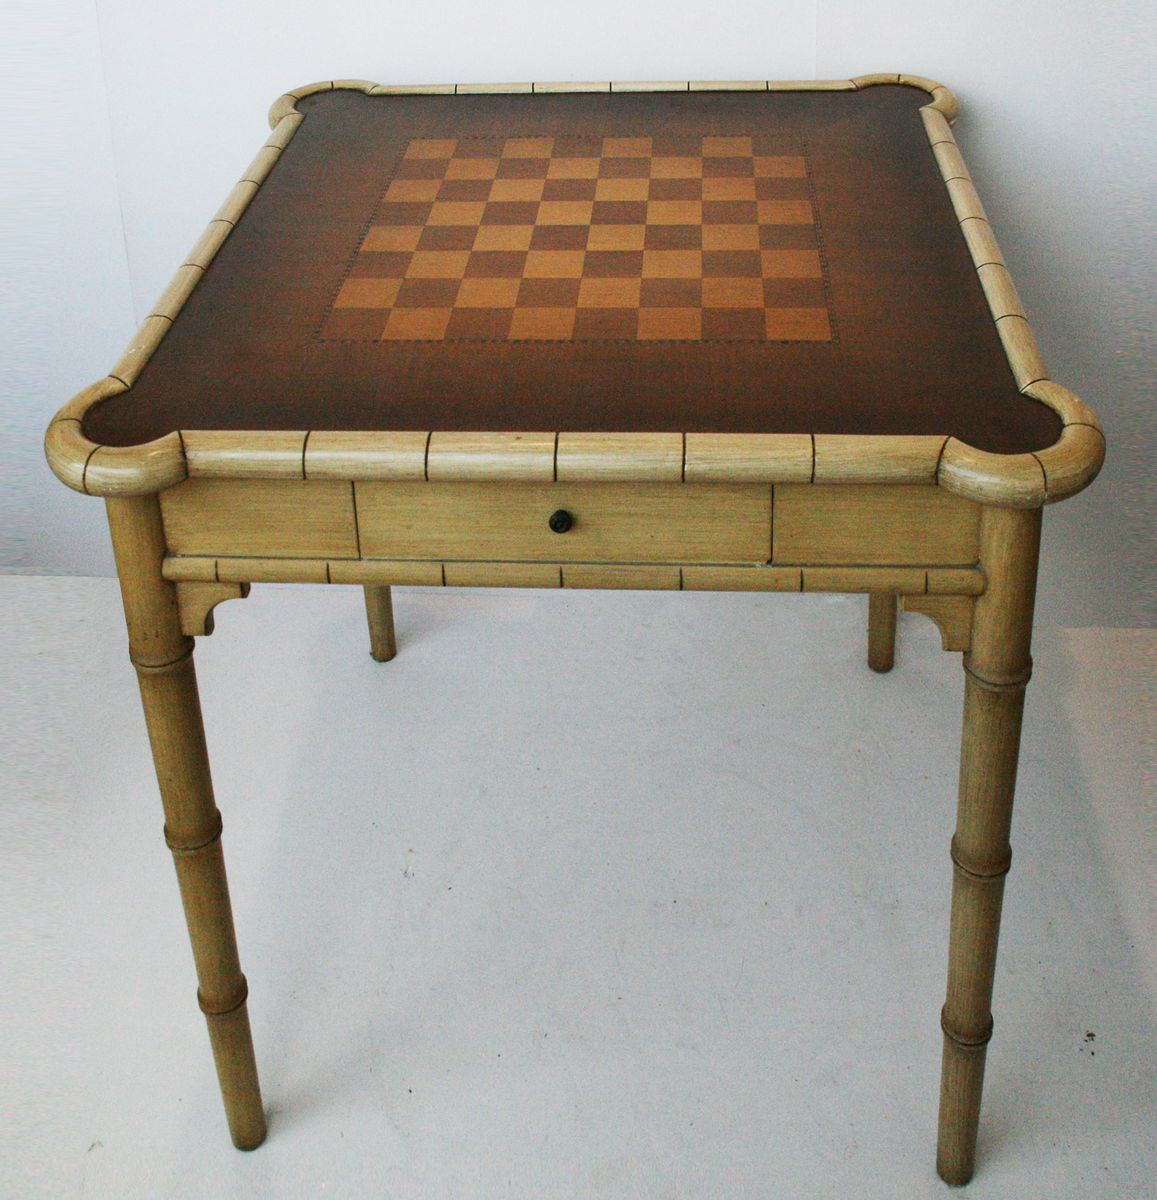 Incroyable Vintage Lacquered Game Table